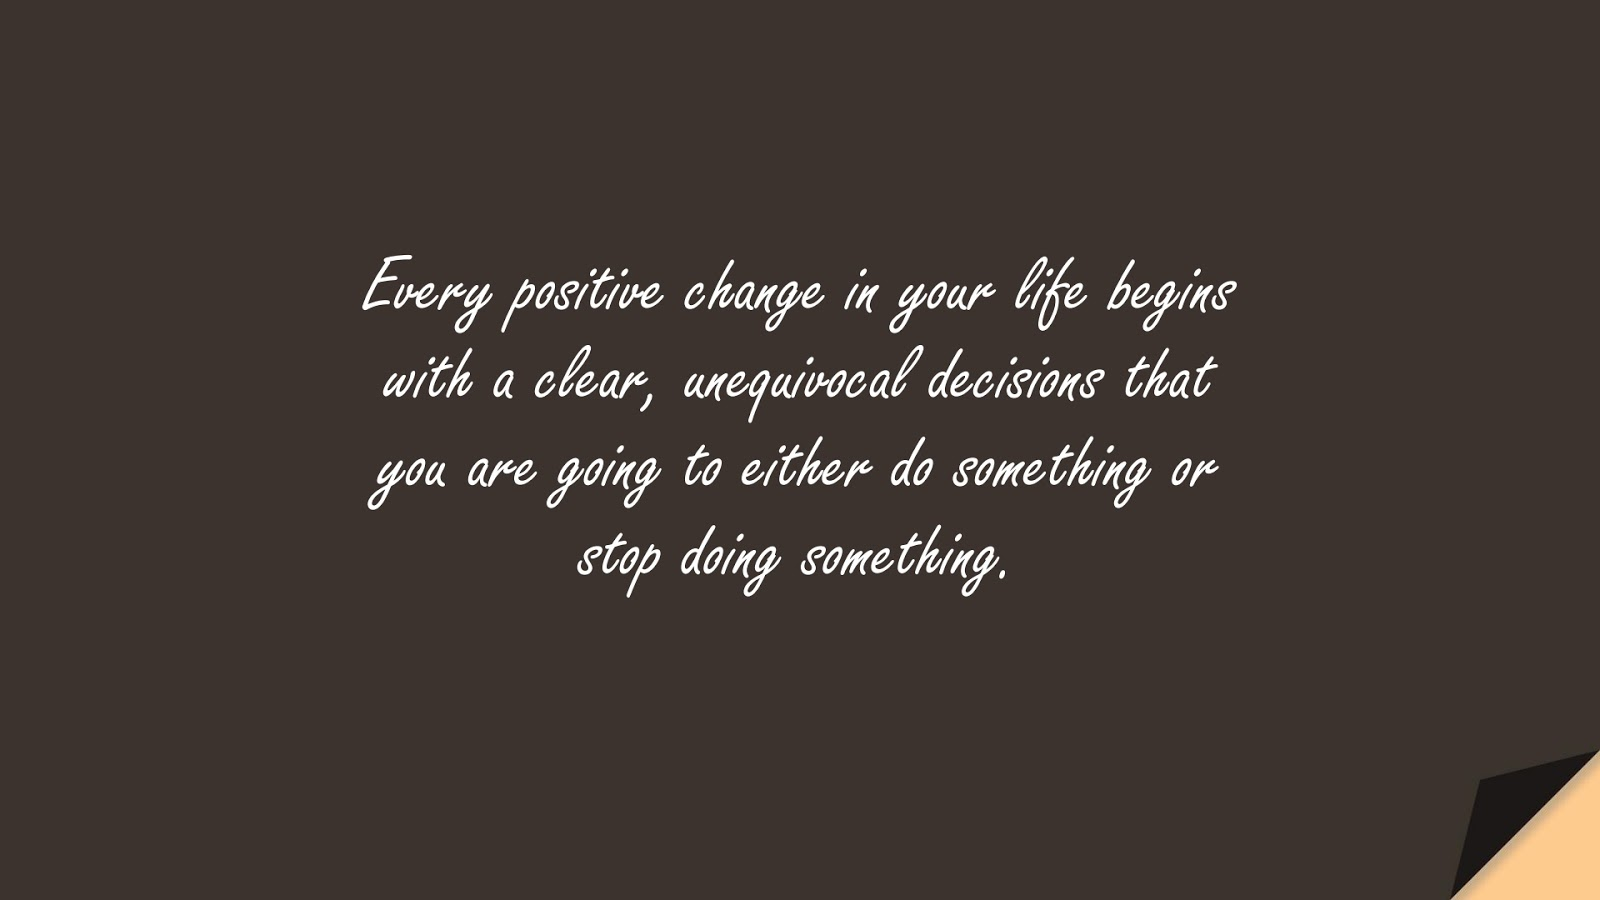 Every positive change in your life begins with a clear, unequivocal decisions that you are going to either do something or stop doing something.FALSE